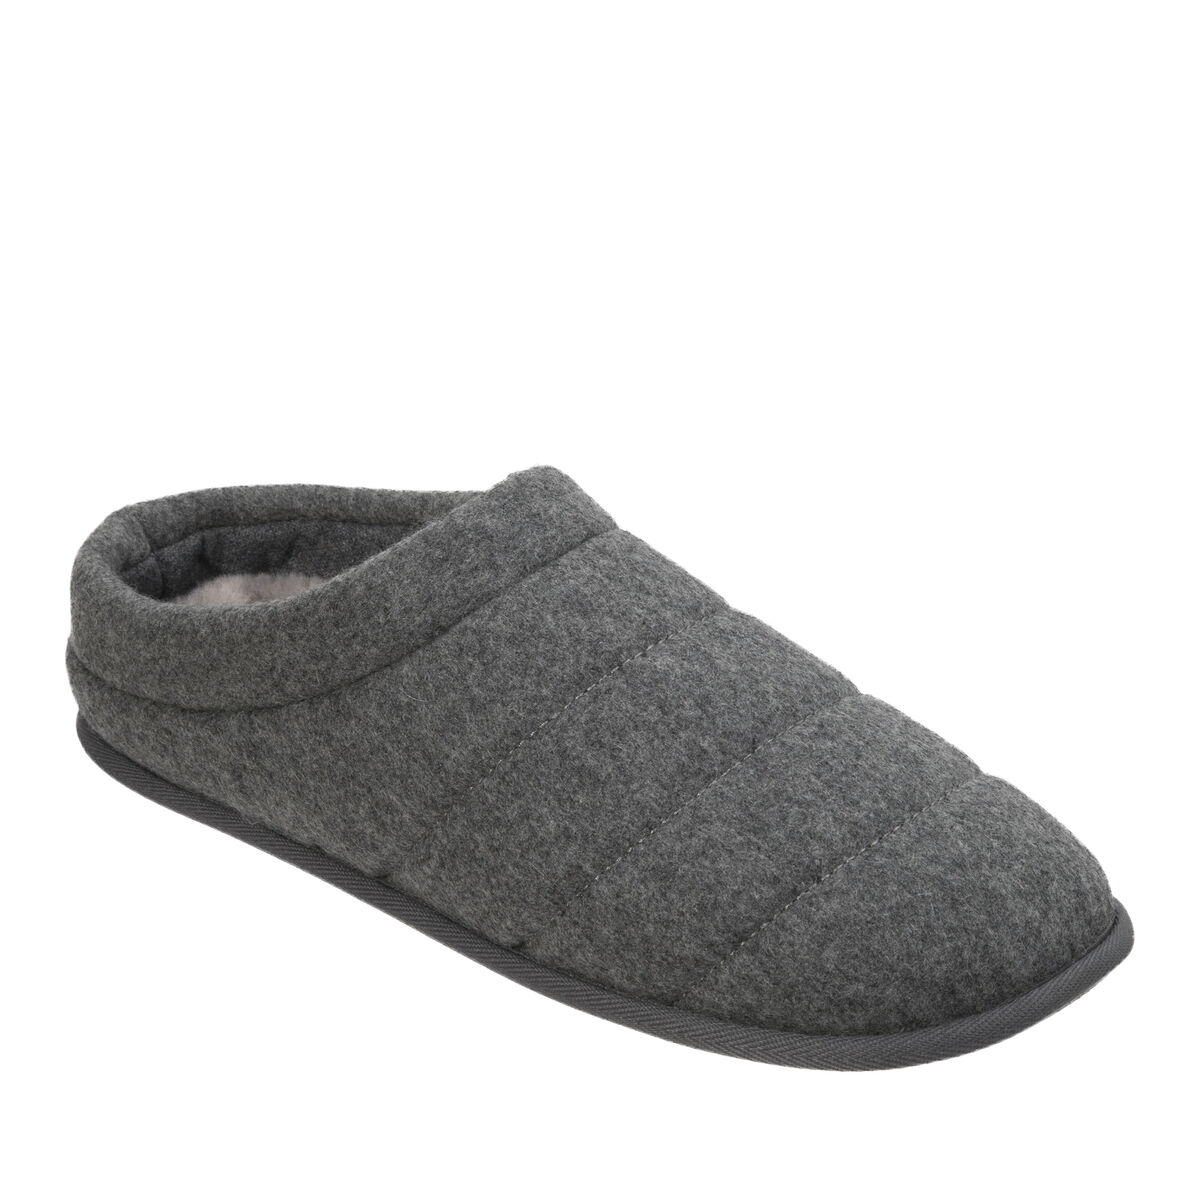 Men's Genuine Wool Quilted Clog